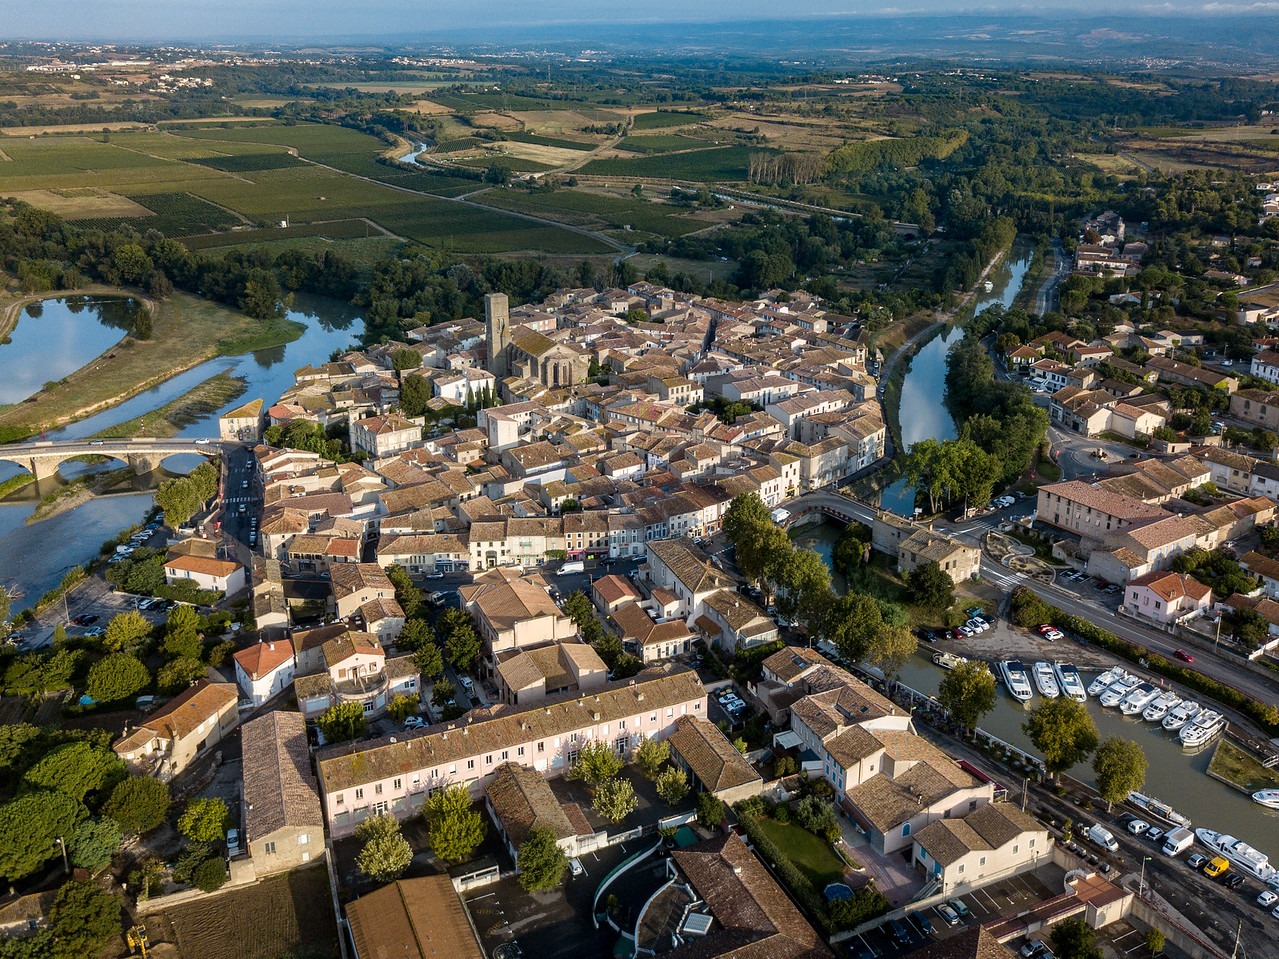 Aerial Drone View of Boats on the the Canal du Midi at Trebes, France